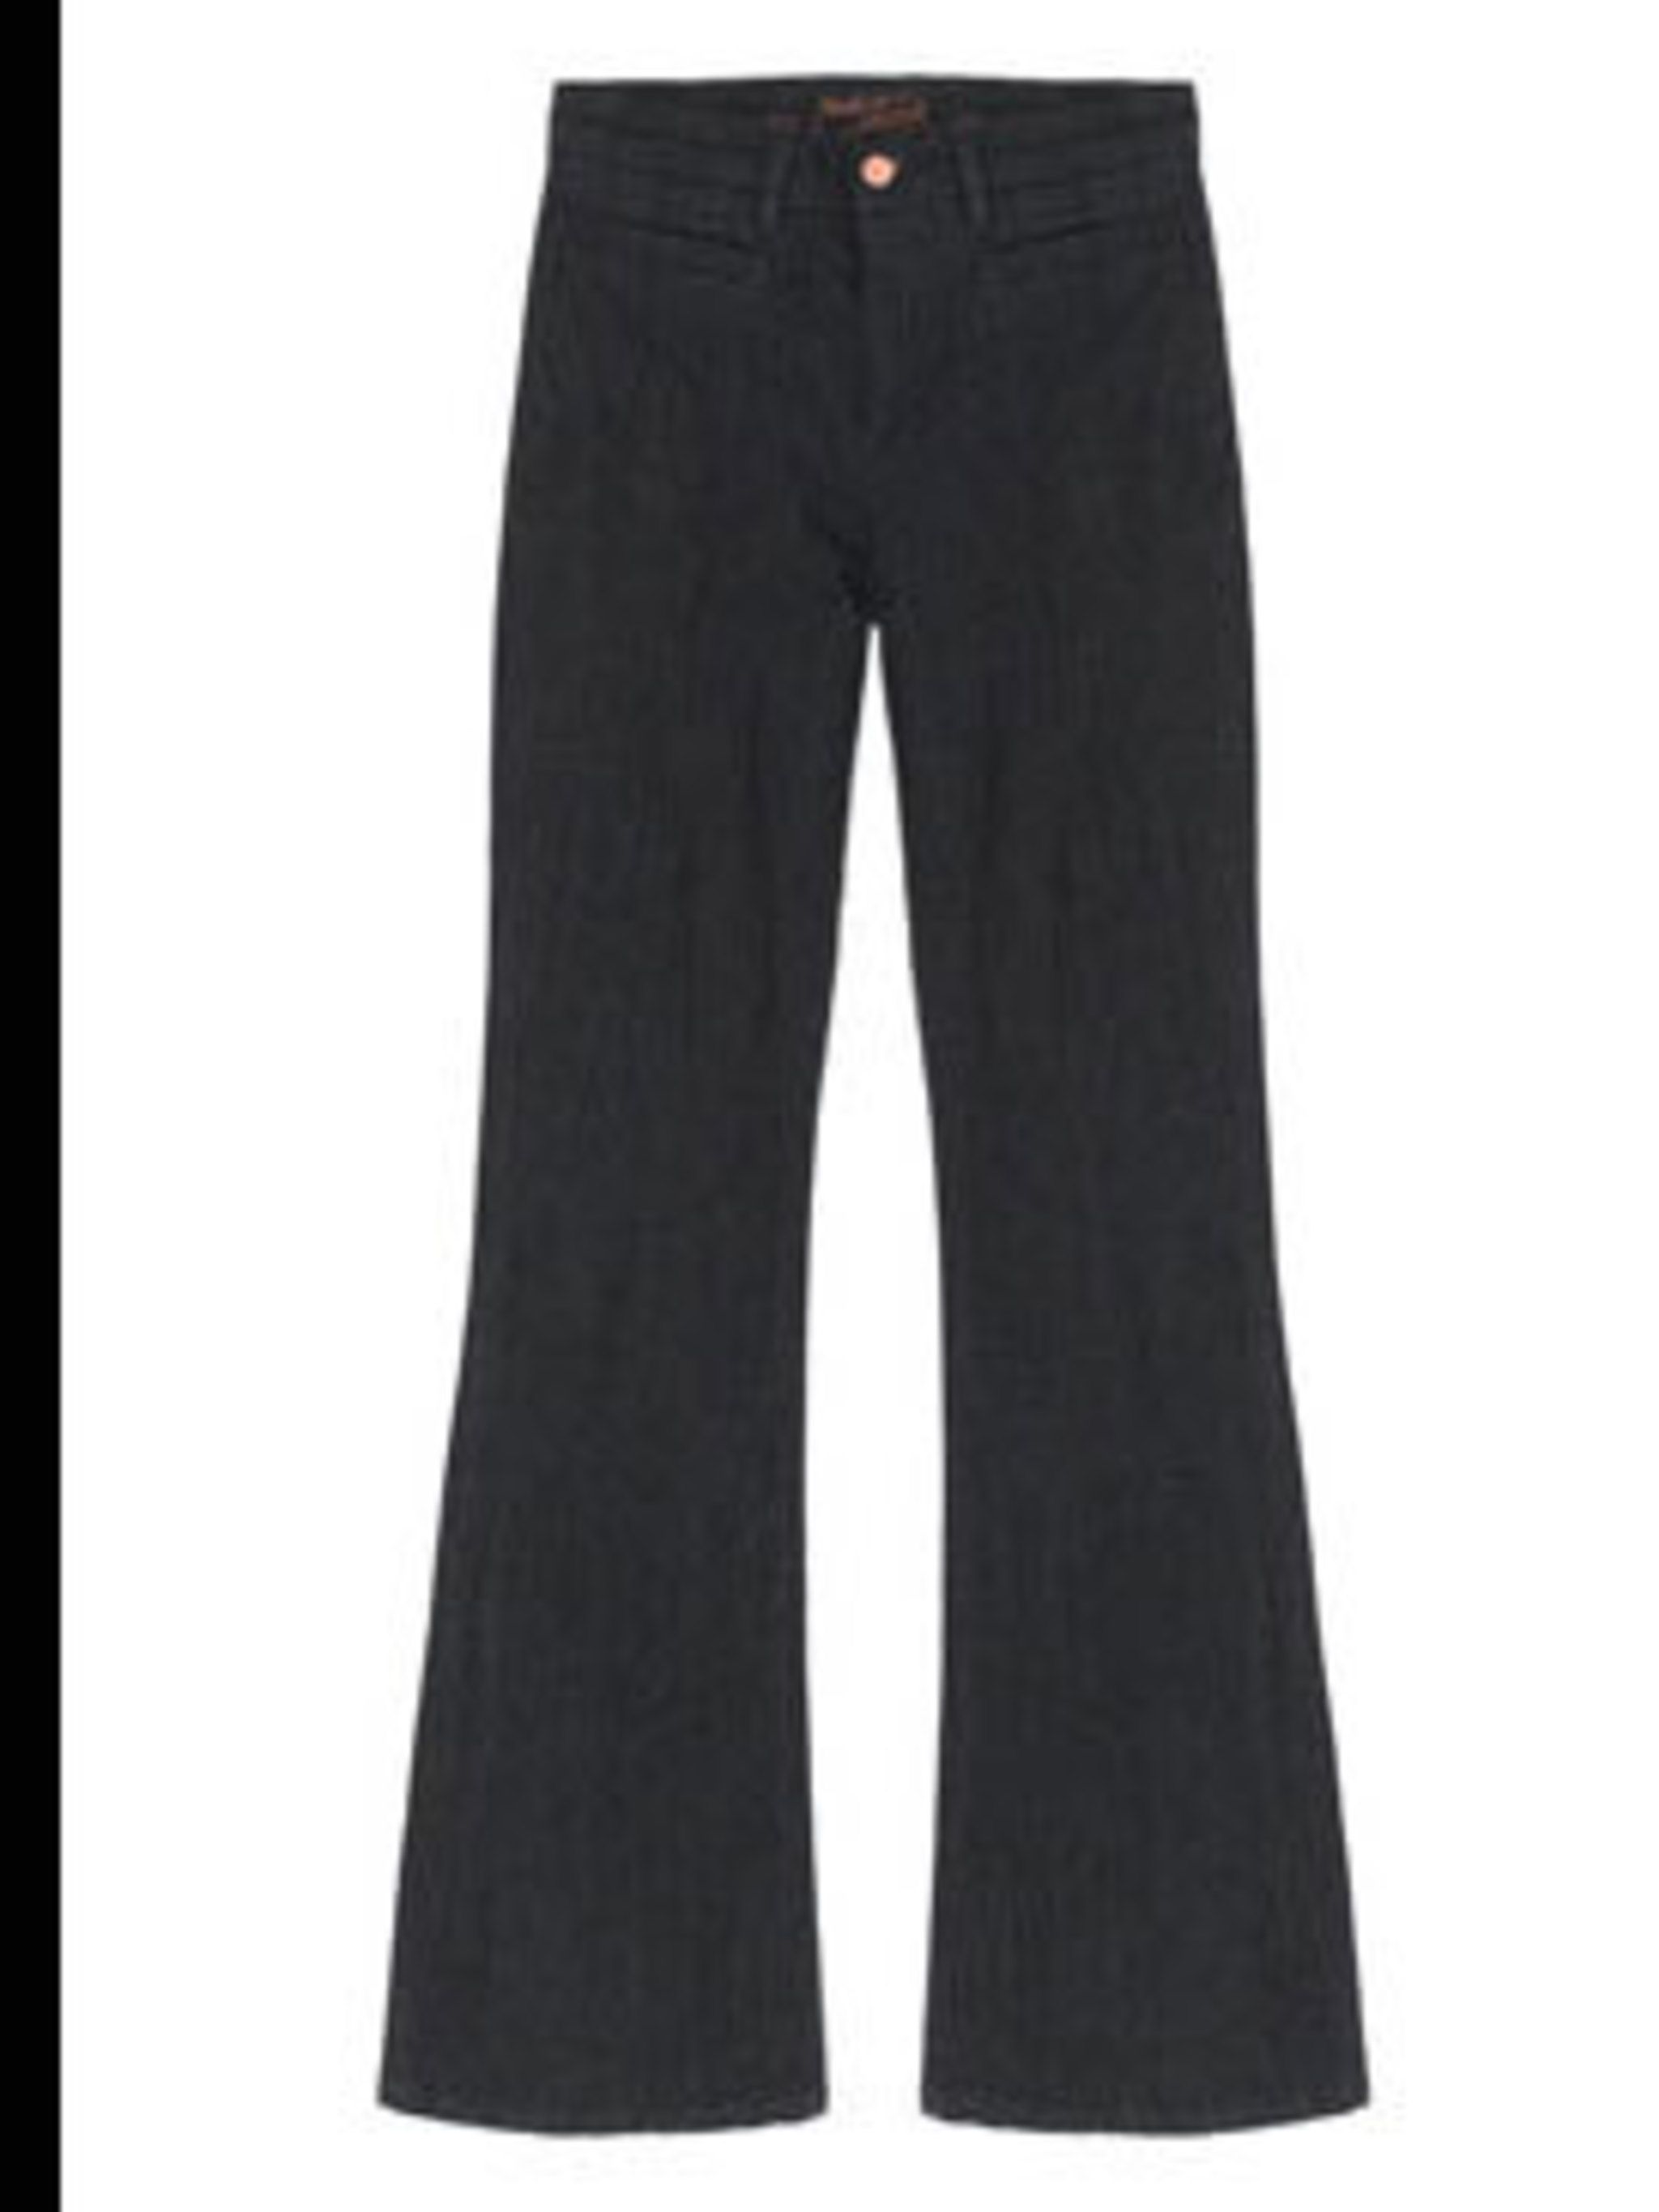 <p>'Marrakech Raw' jeans, £140 from Made in Heaven for stockists call 020 7225 3816 </p>